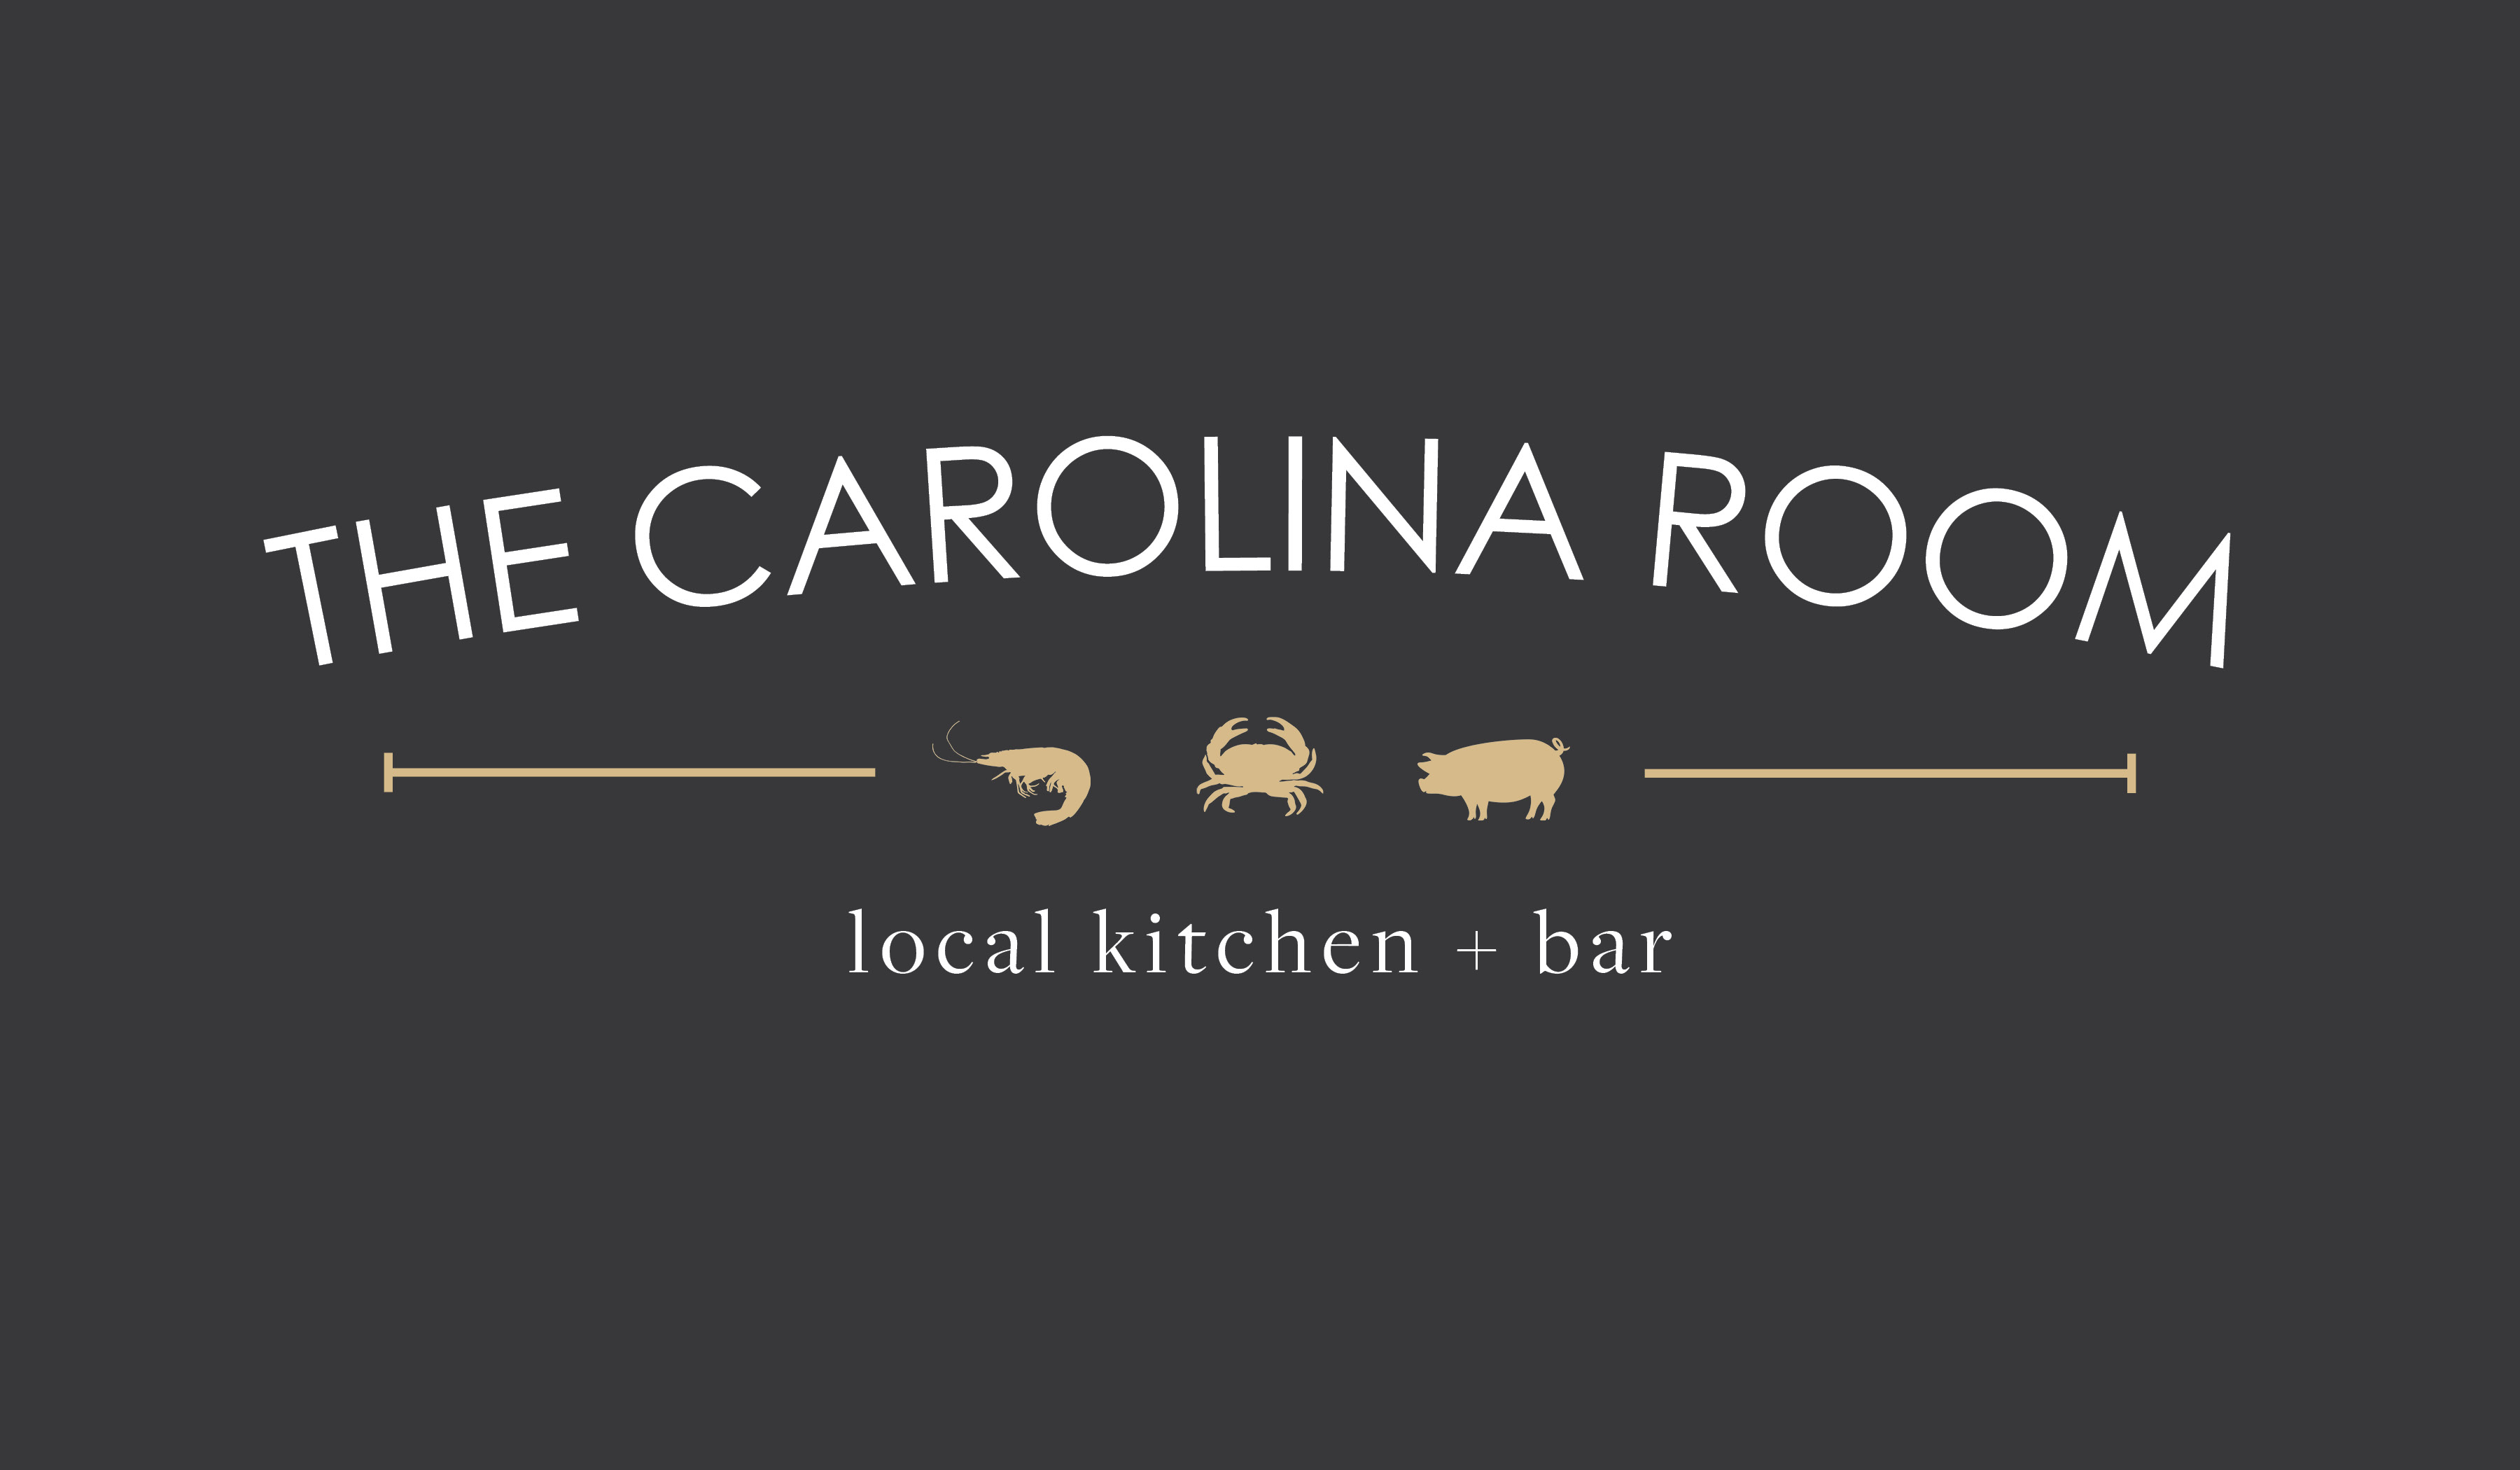 The Carolina Room